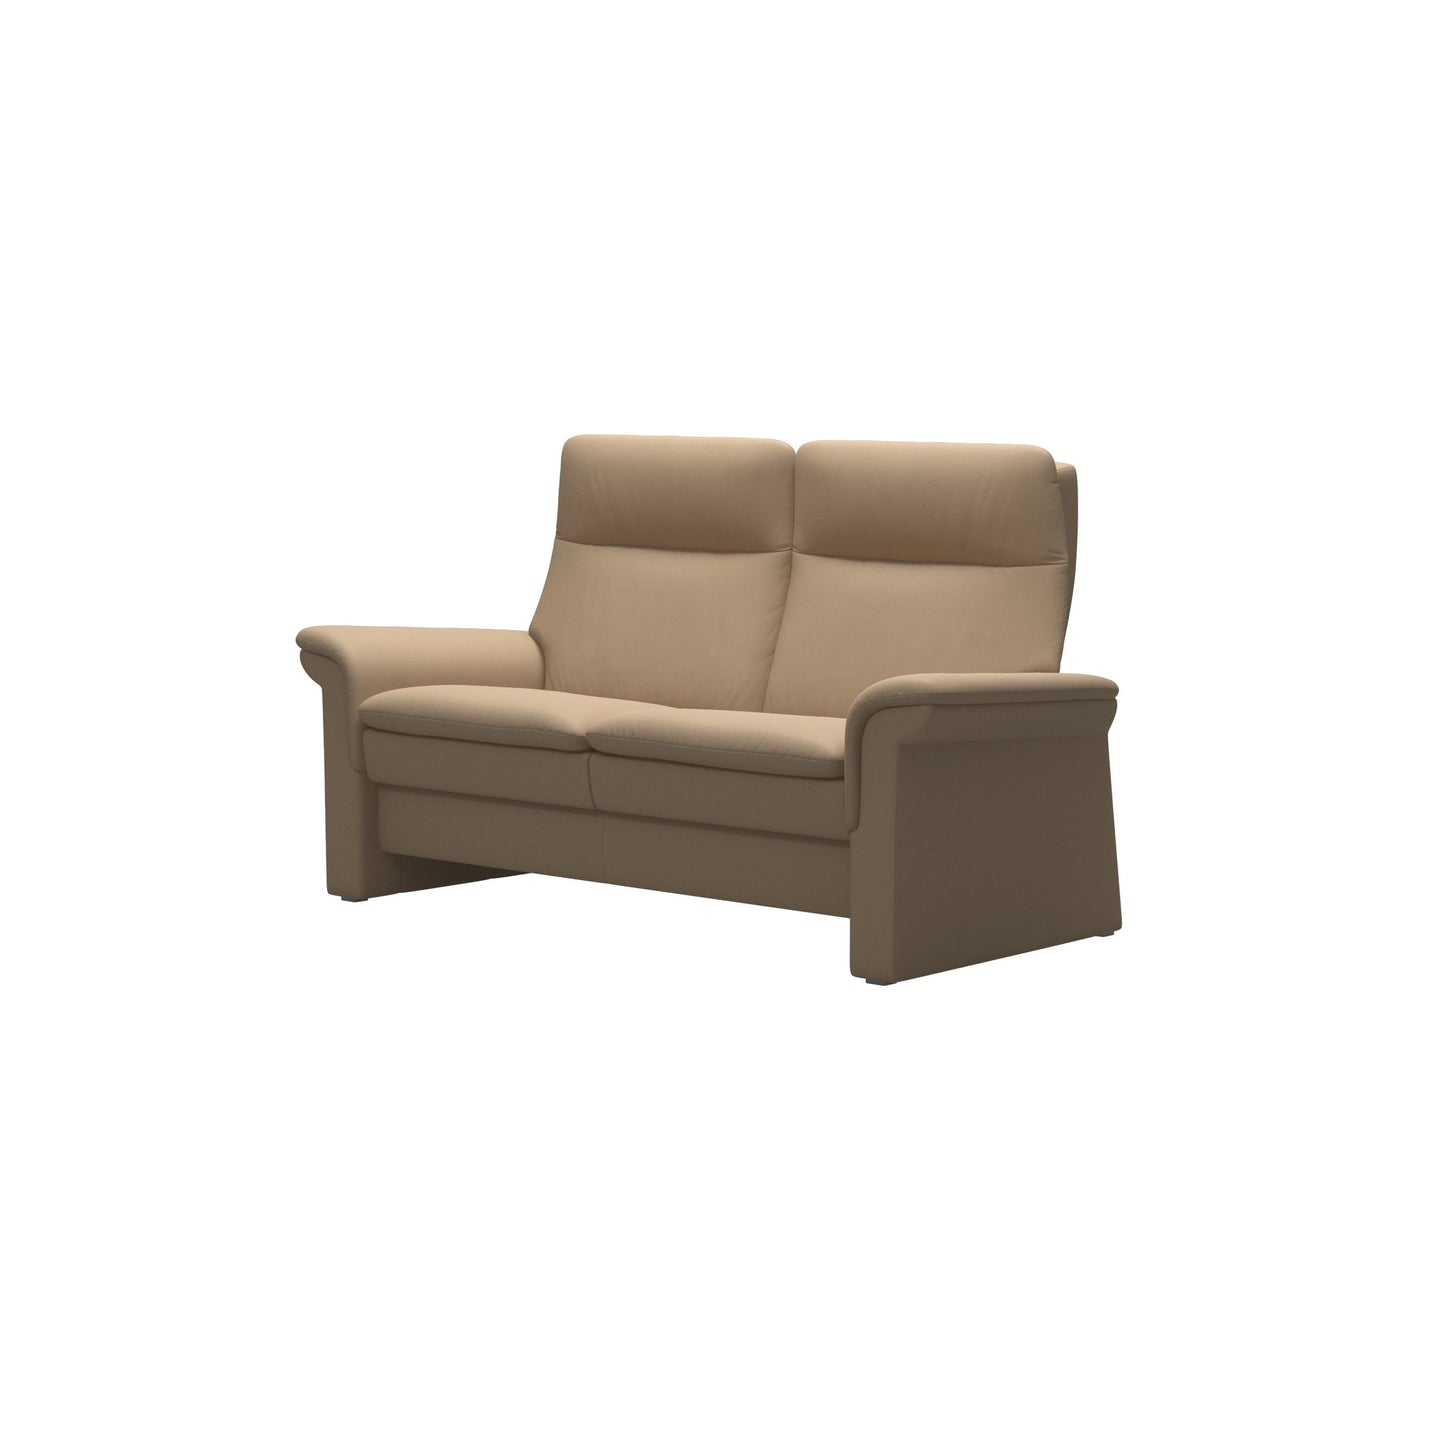 Stressless® Saga (L) 2 seater High back